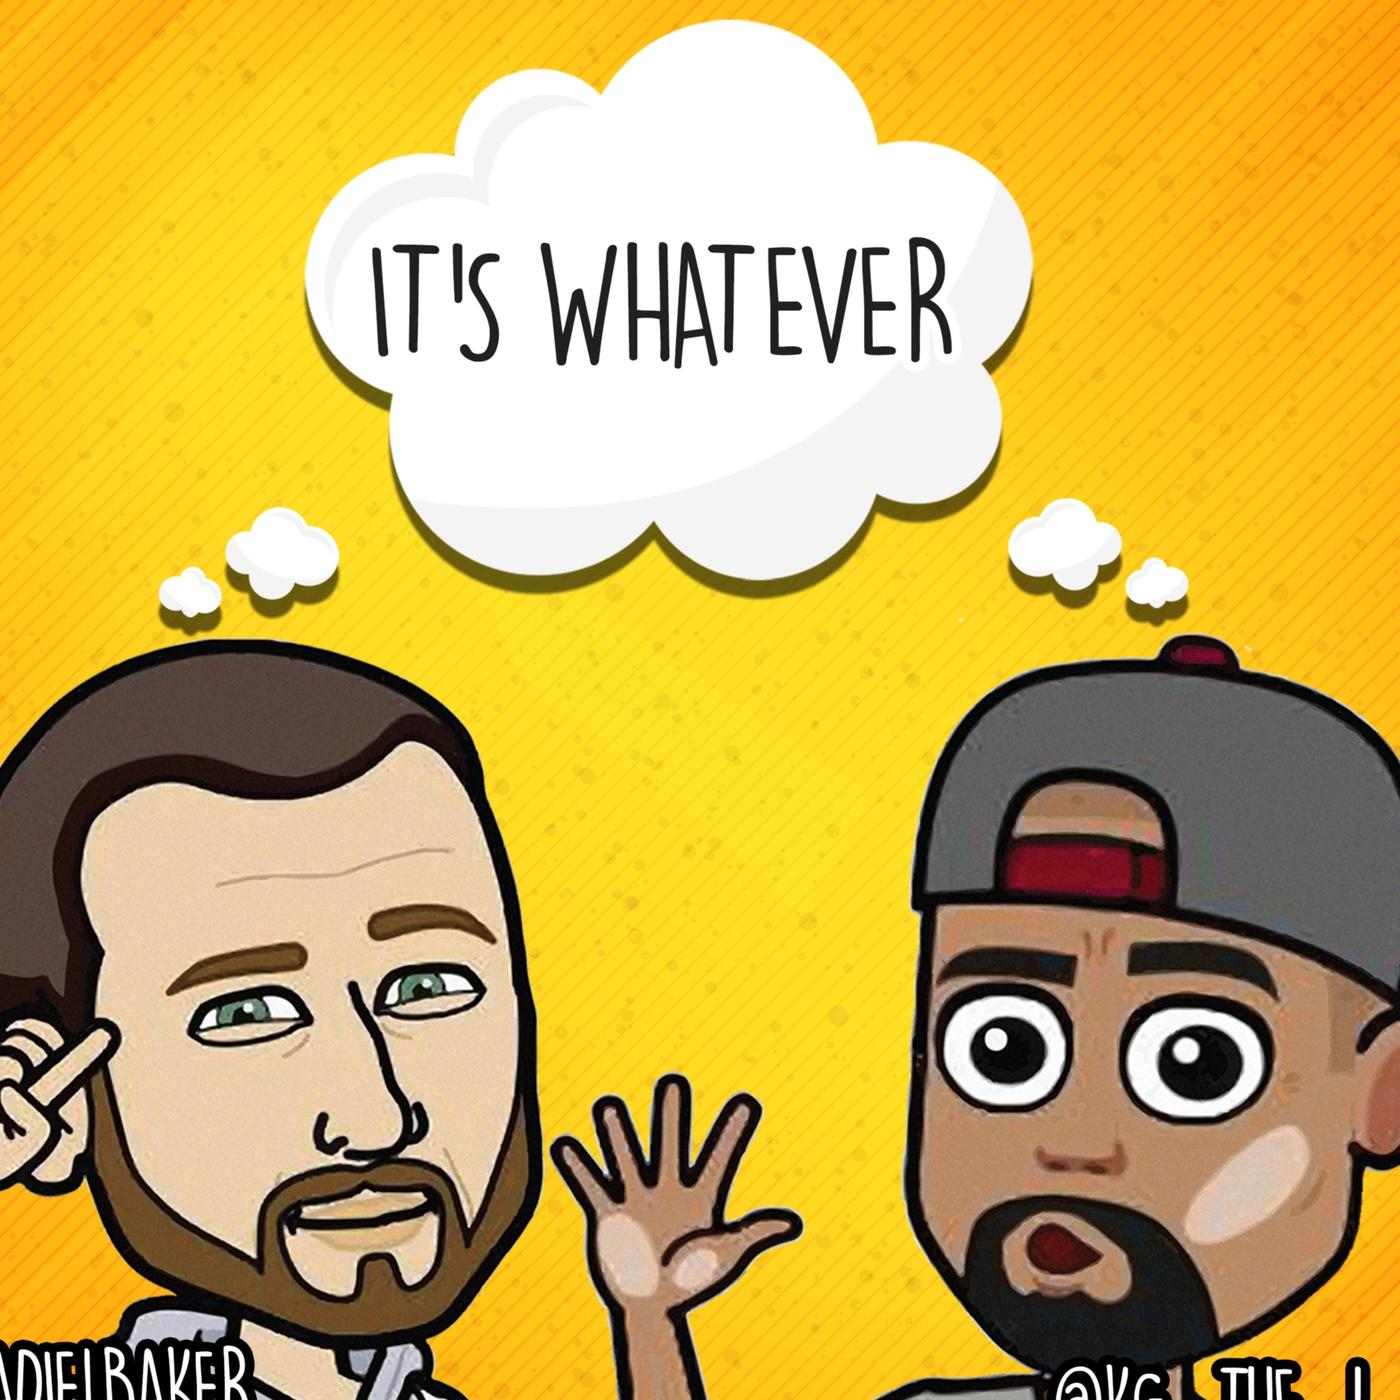 it's whatever (podcast) - @fadielbaker and @kg_the_1